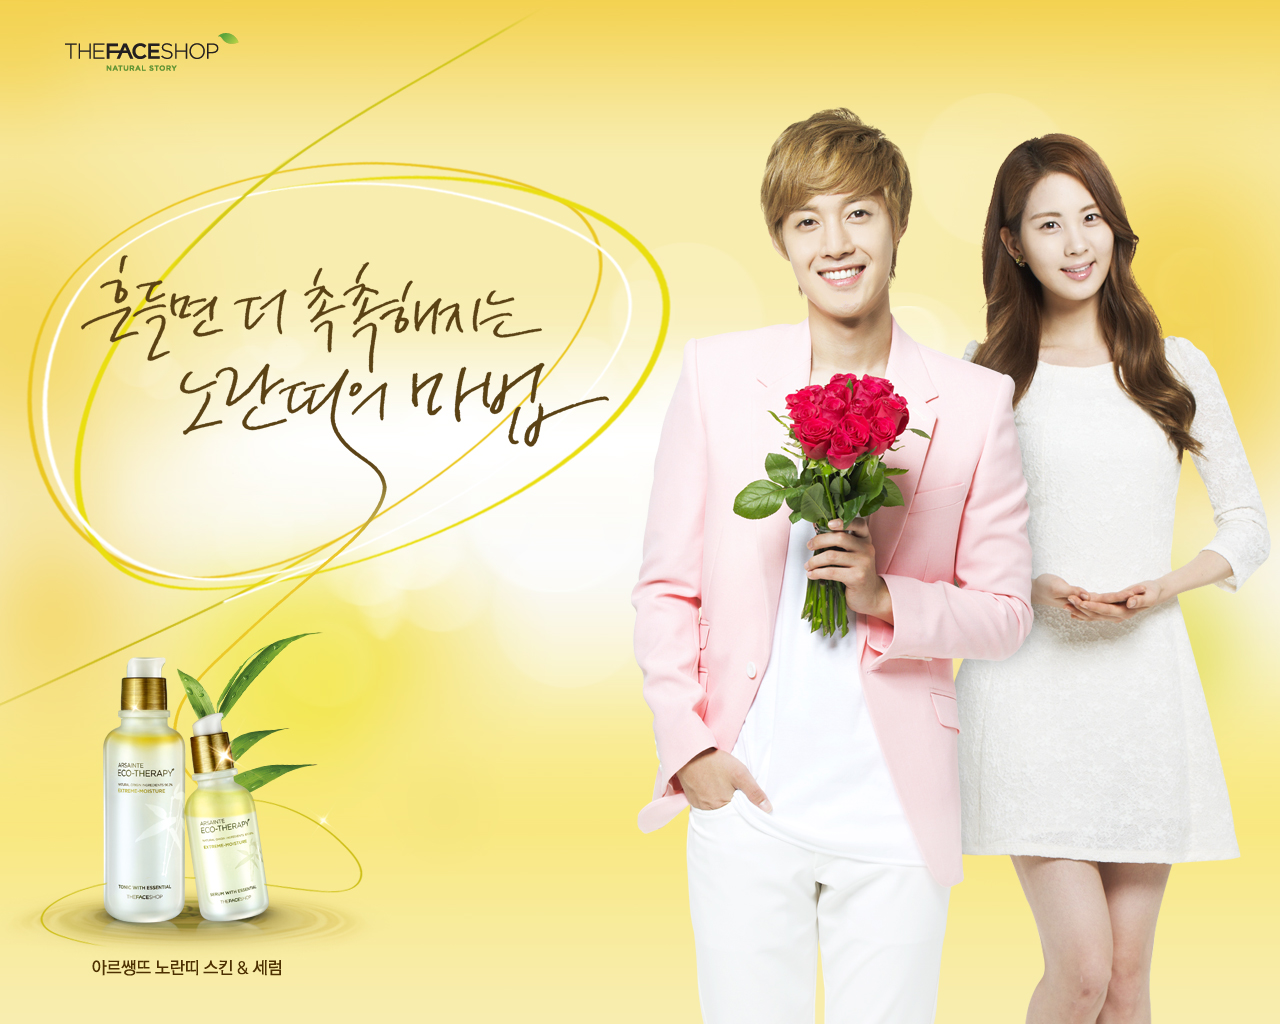 [OTHER][05-10-2011]HÌNH ẢNH + VIDEO MỚI NHẤT CỦA THE FACE SHOP @ SEOHYUN 04_sb_download_wallpaper_1280x1024_%25E7%259B%25AE%25E6%2595%25B2